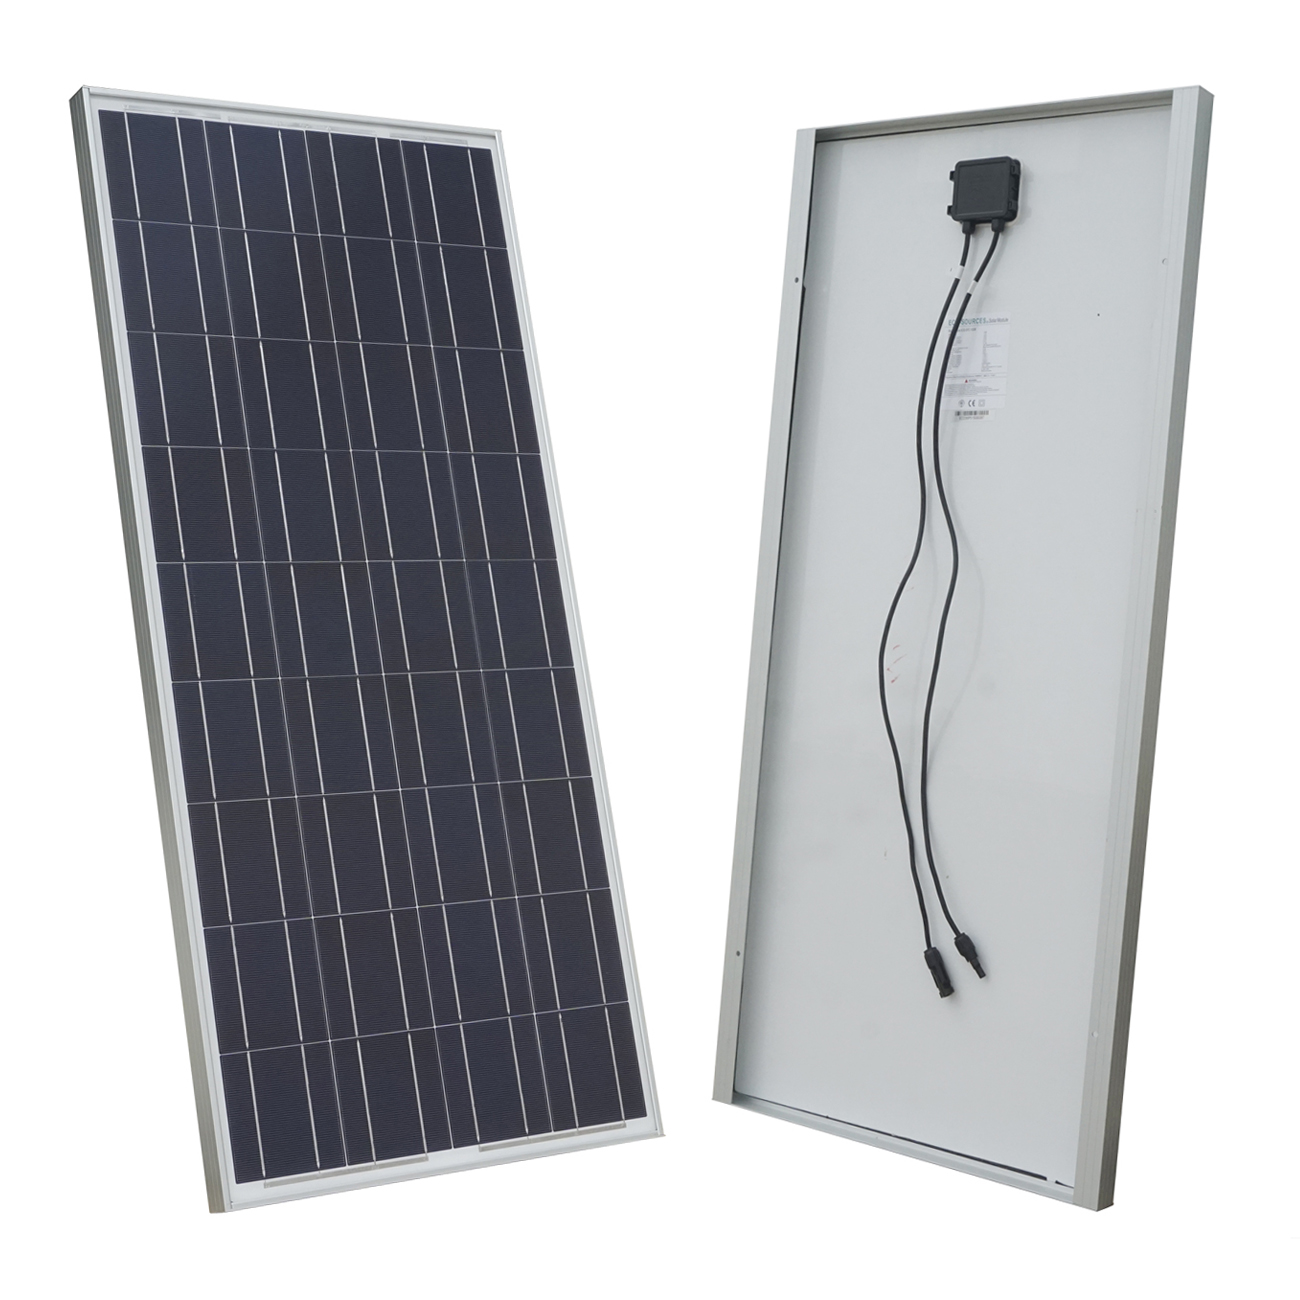 USA Stock 100 Watt 100W 12V Solar Panel Battery Charger for RV Boat Home Camping Off Grid Free Shipping(China (Mainland))